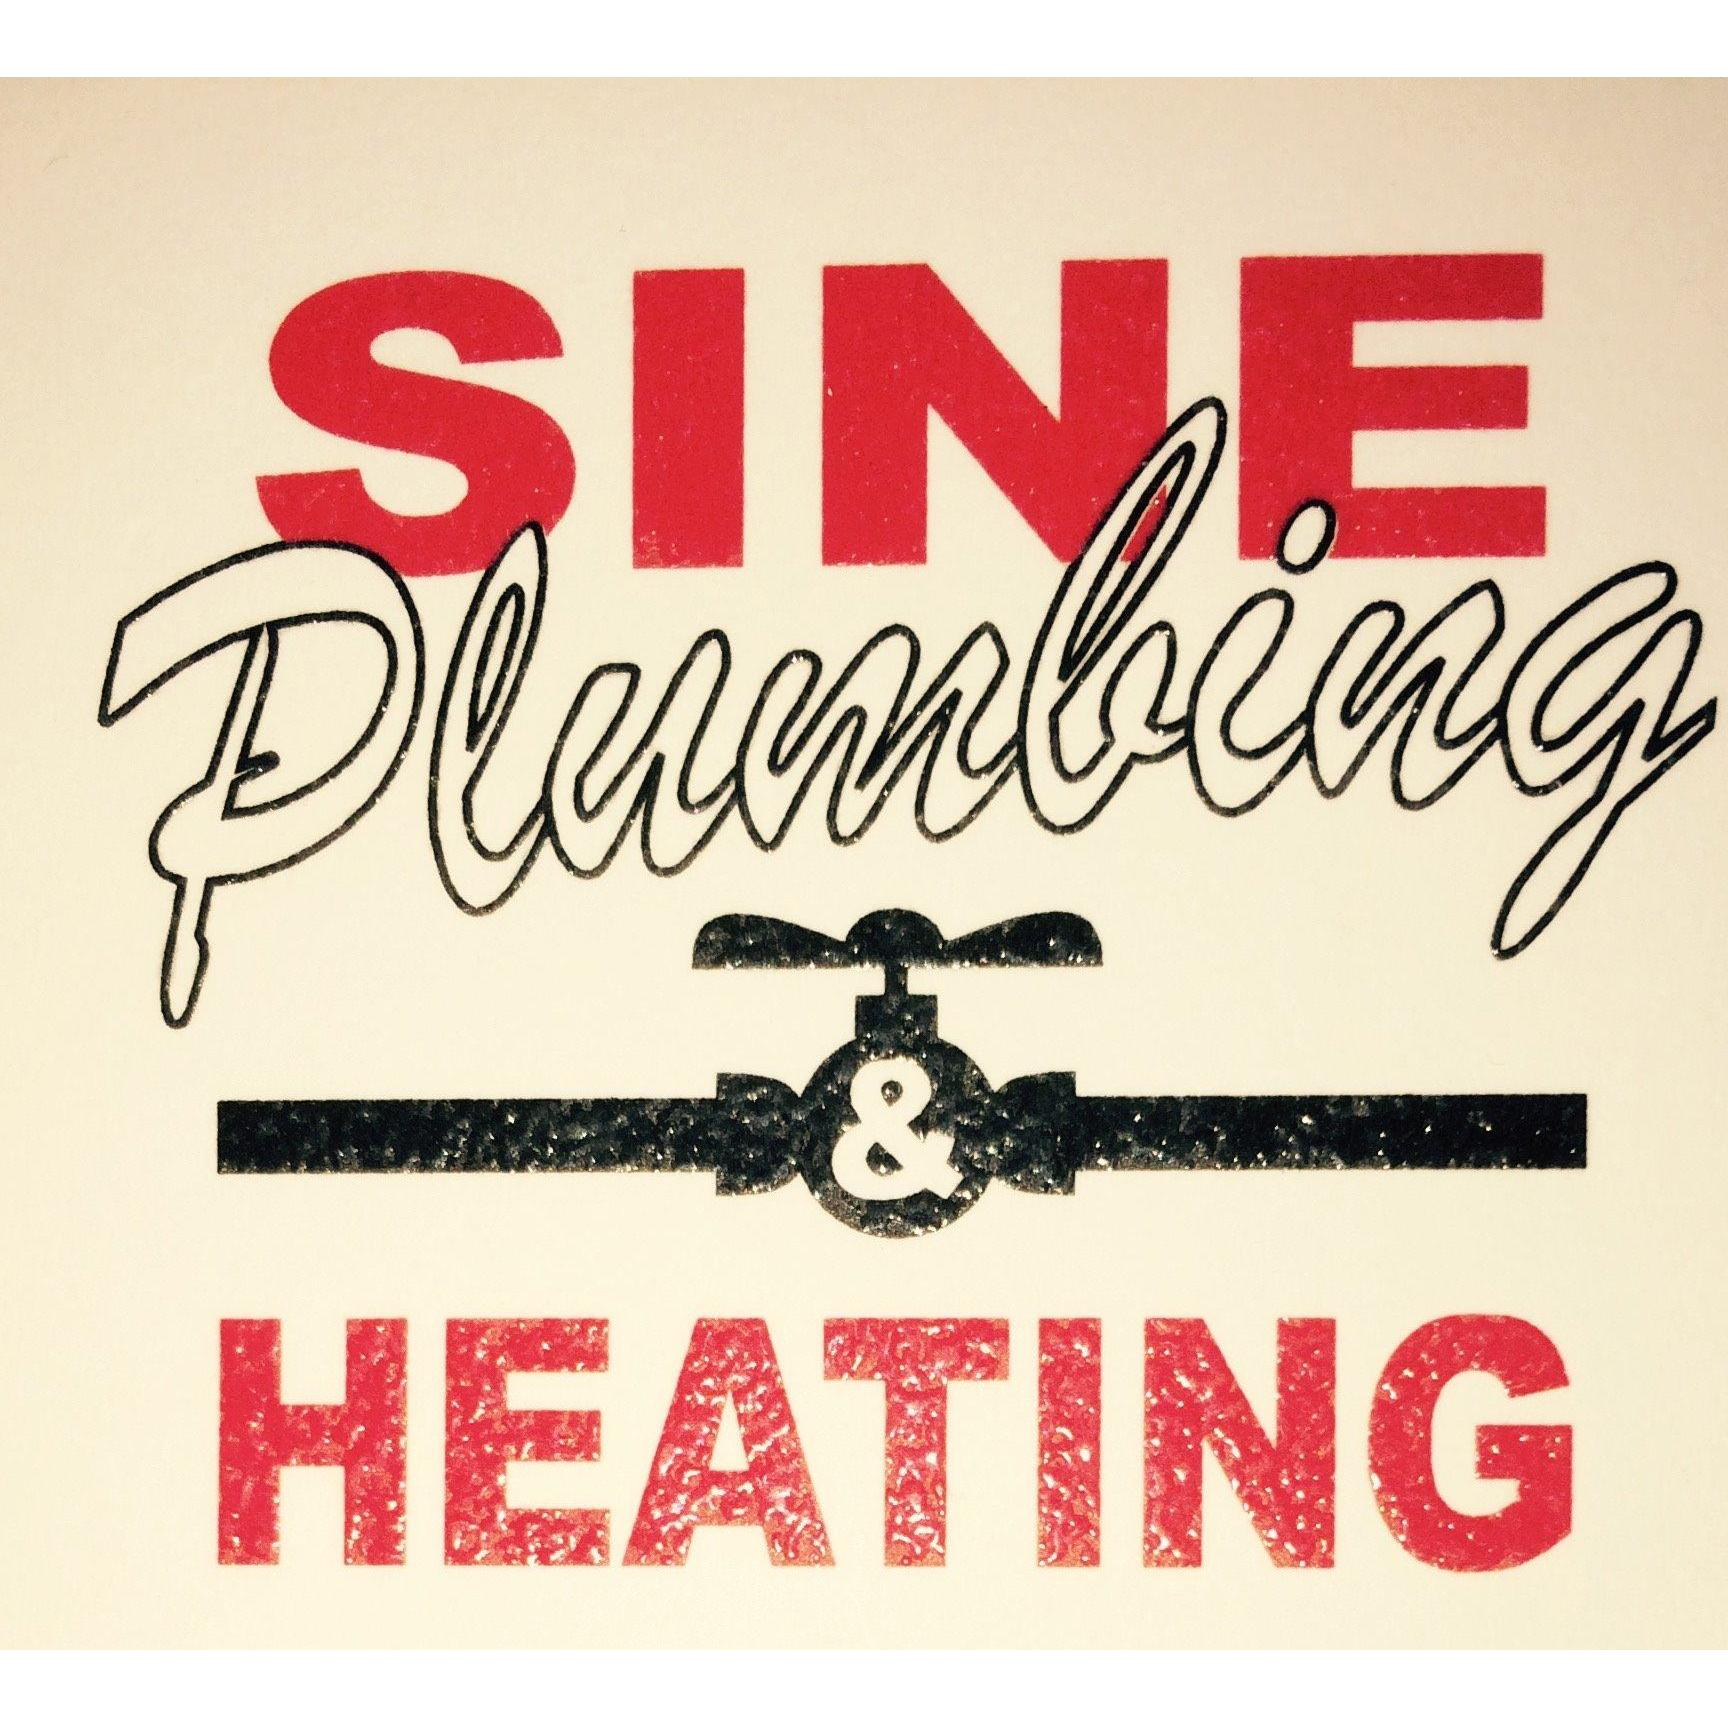 Sine Plumbing & Heating Co Inc